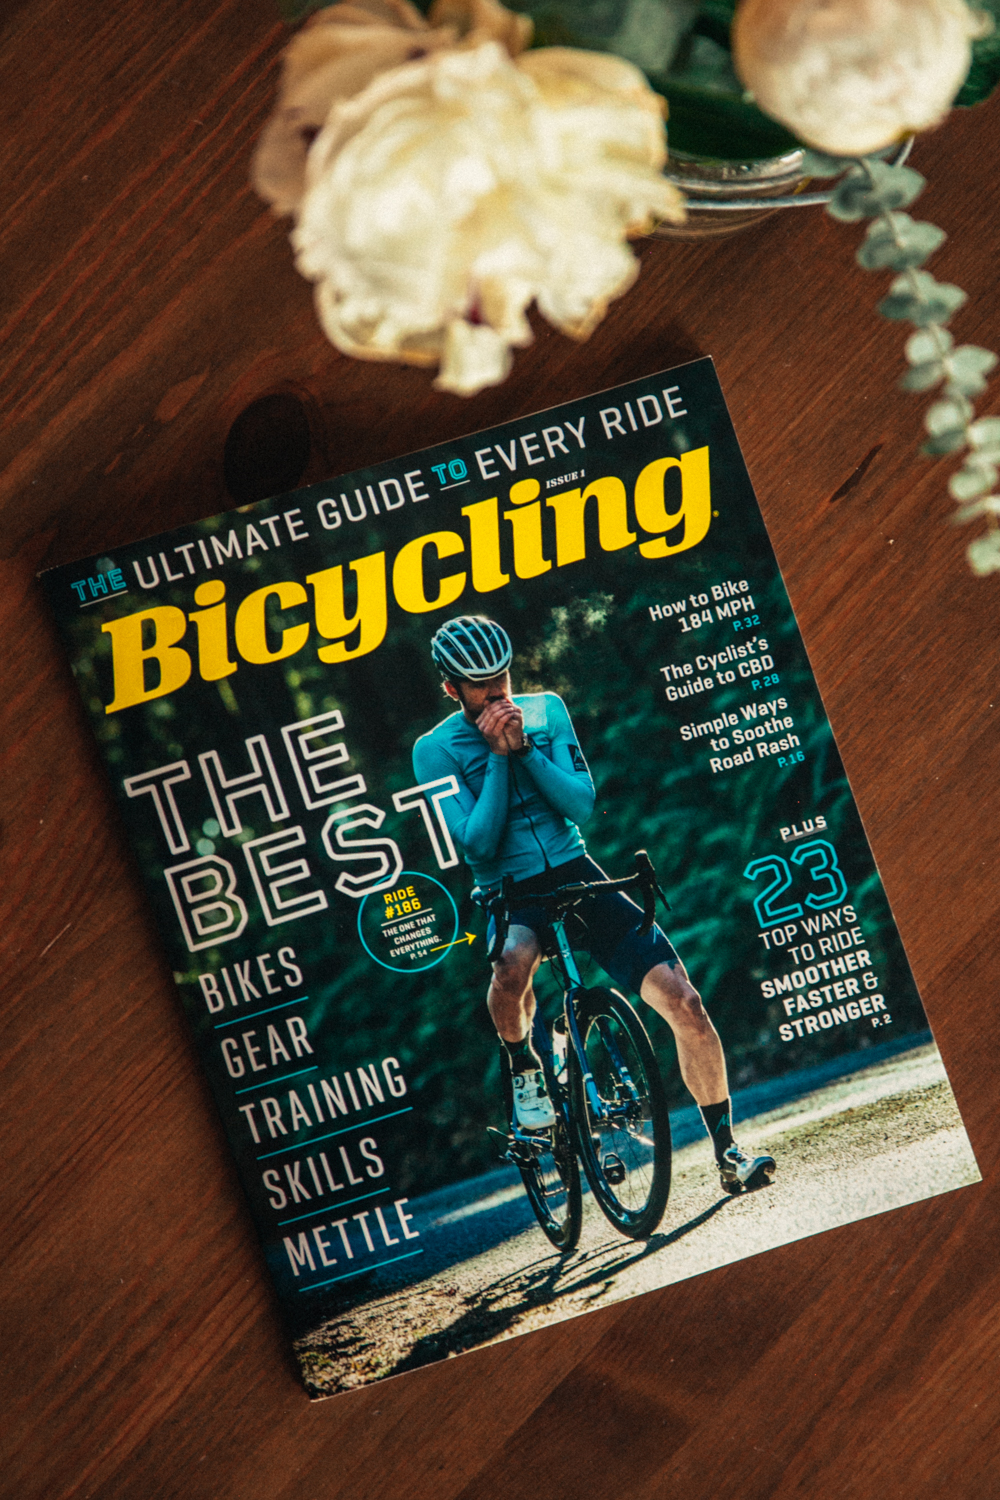 Fall18_BikeMag-cover-2MettleSocialCalendarImages.jpg